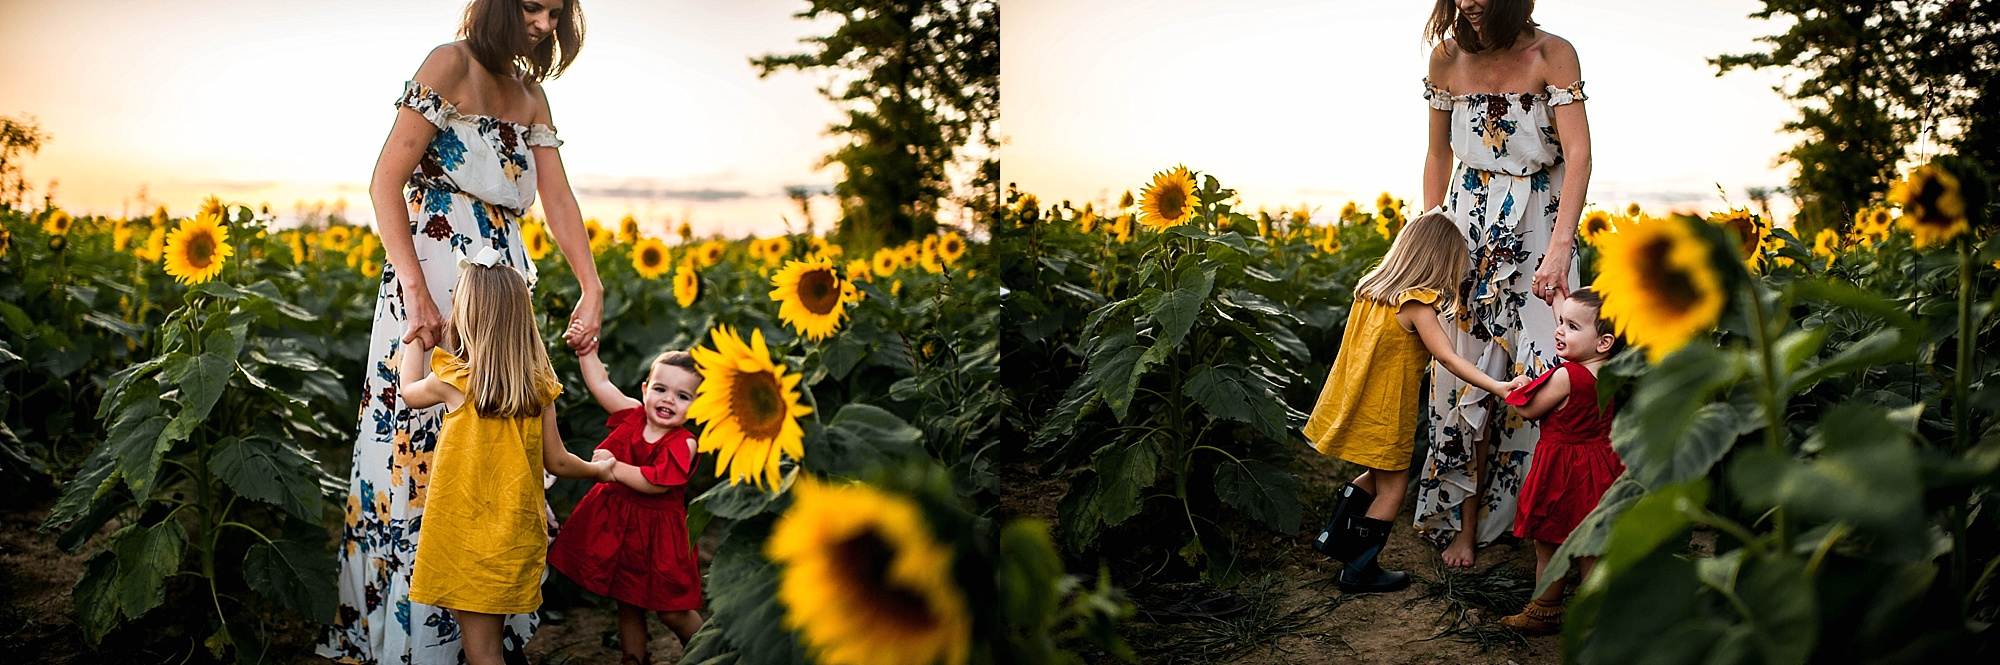 lauren-grayson-photography-cleveland-ohio-photographer-sunflower-fields-sunset-golden-hour-photo-shoot-mommy-and-me-family-child-photographer_0575.jpg